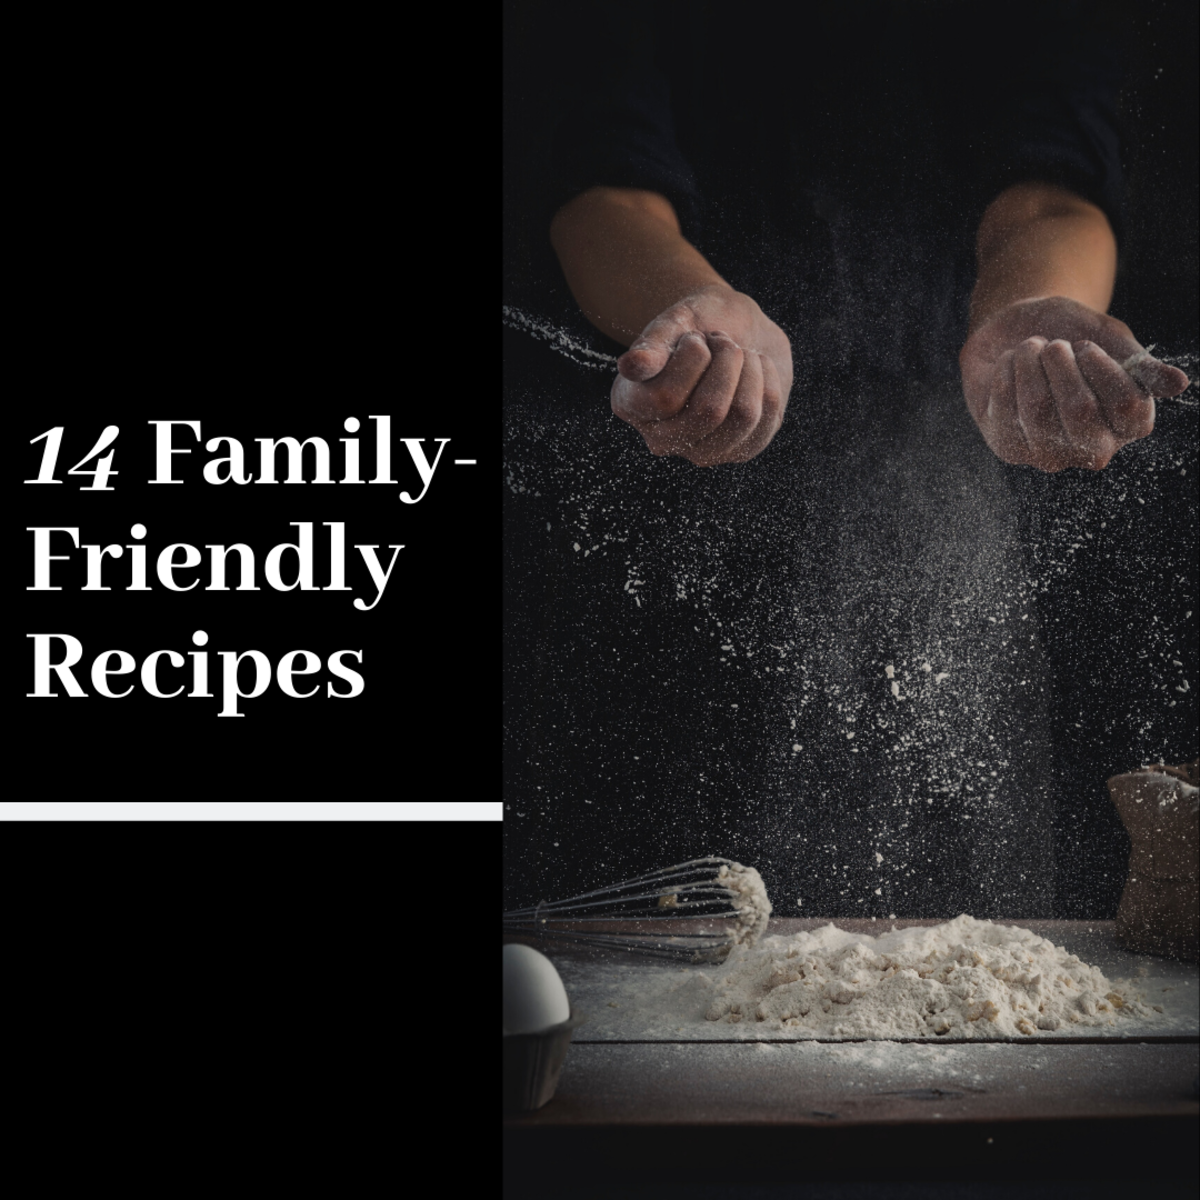 These recipes will save you money and wow your family!